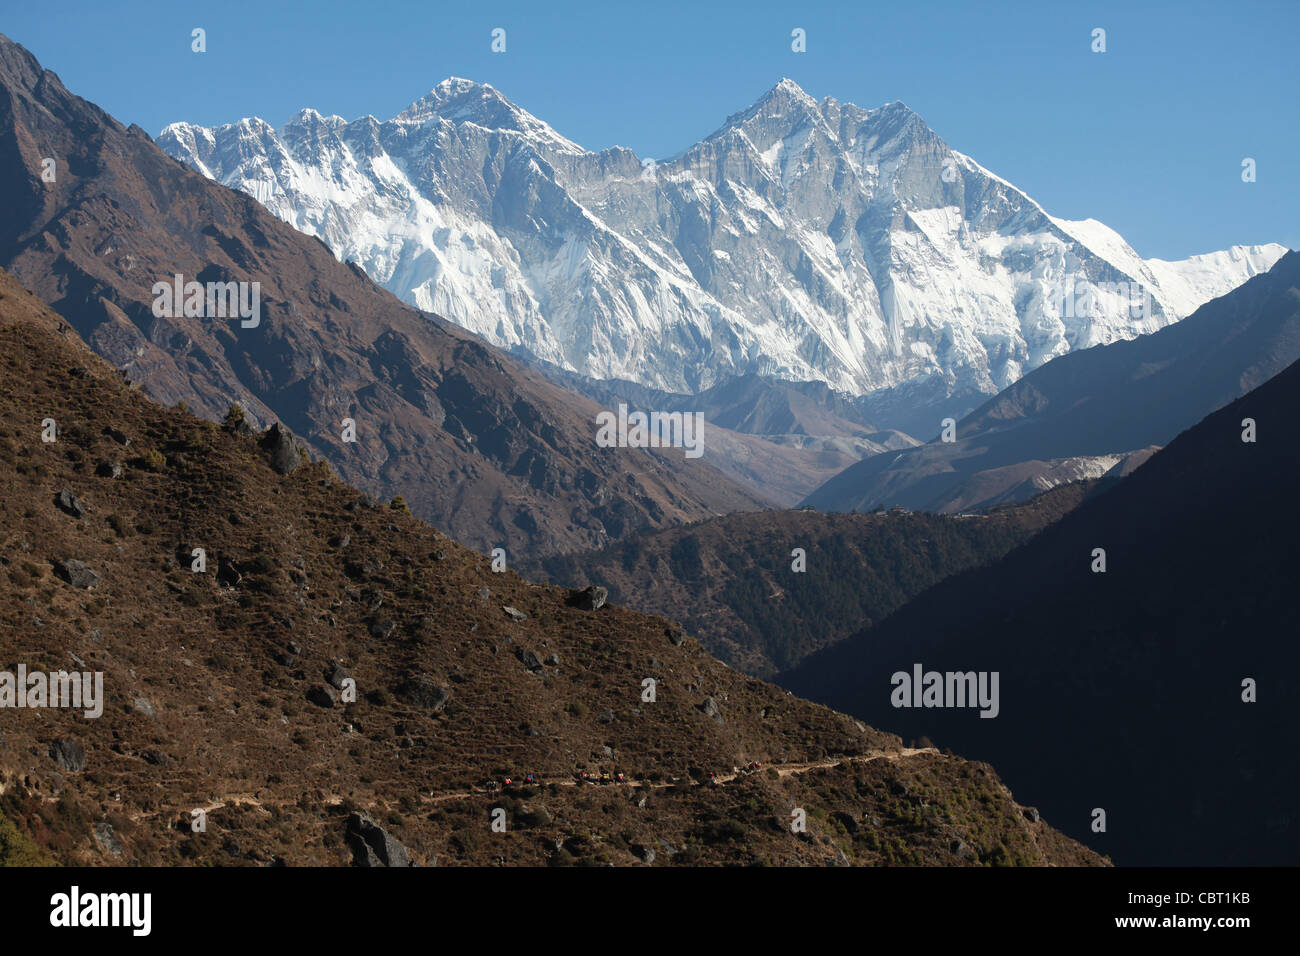 View of Mount Everest and the Khumbu valley from Namche Bazar - Stock Image